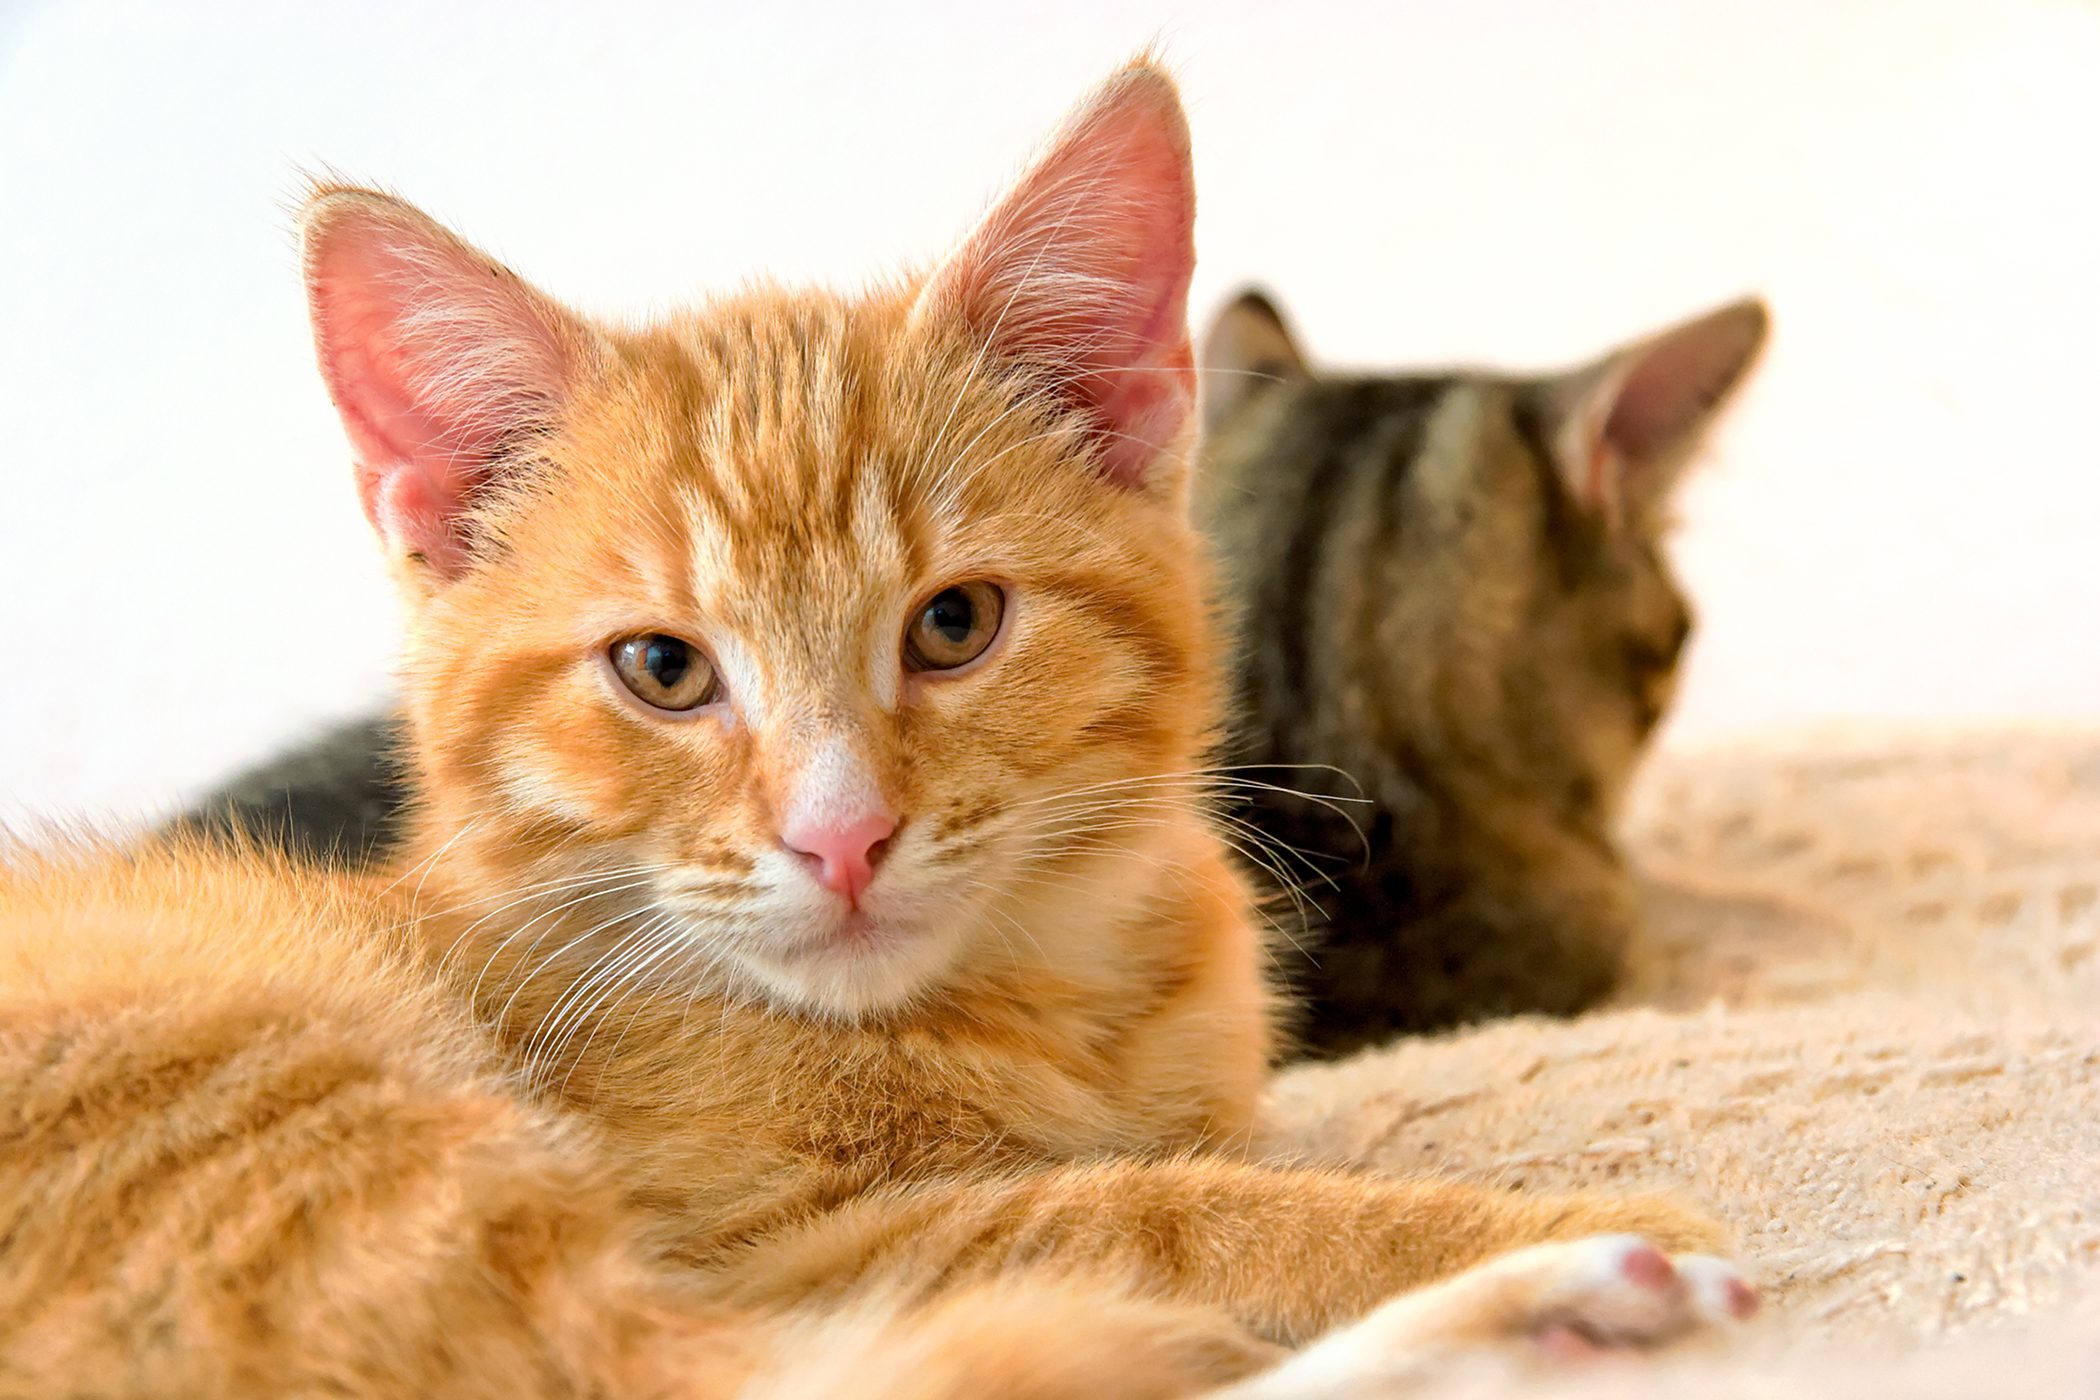 Immune System Tumors in Cats